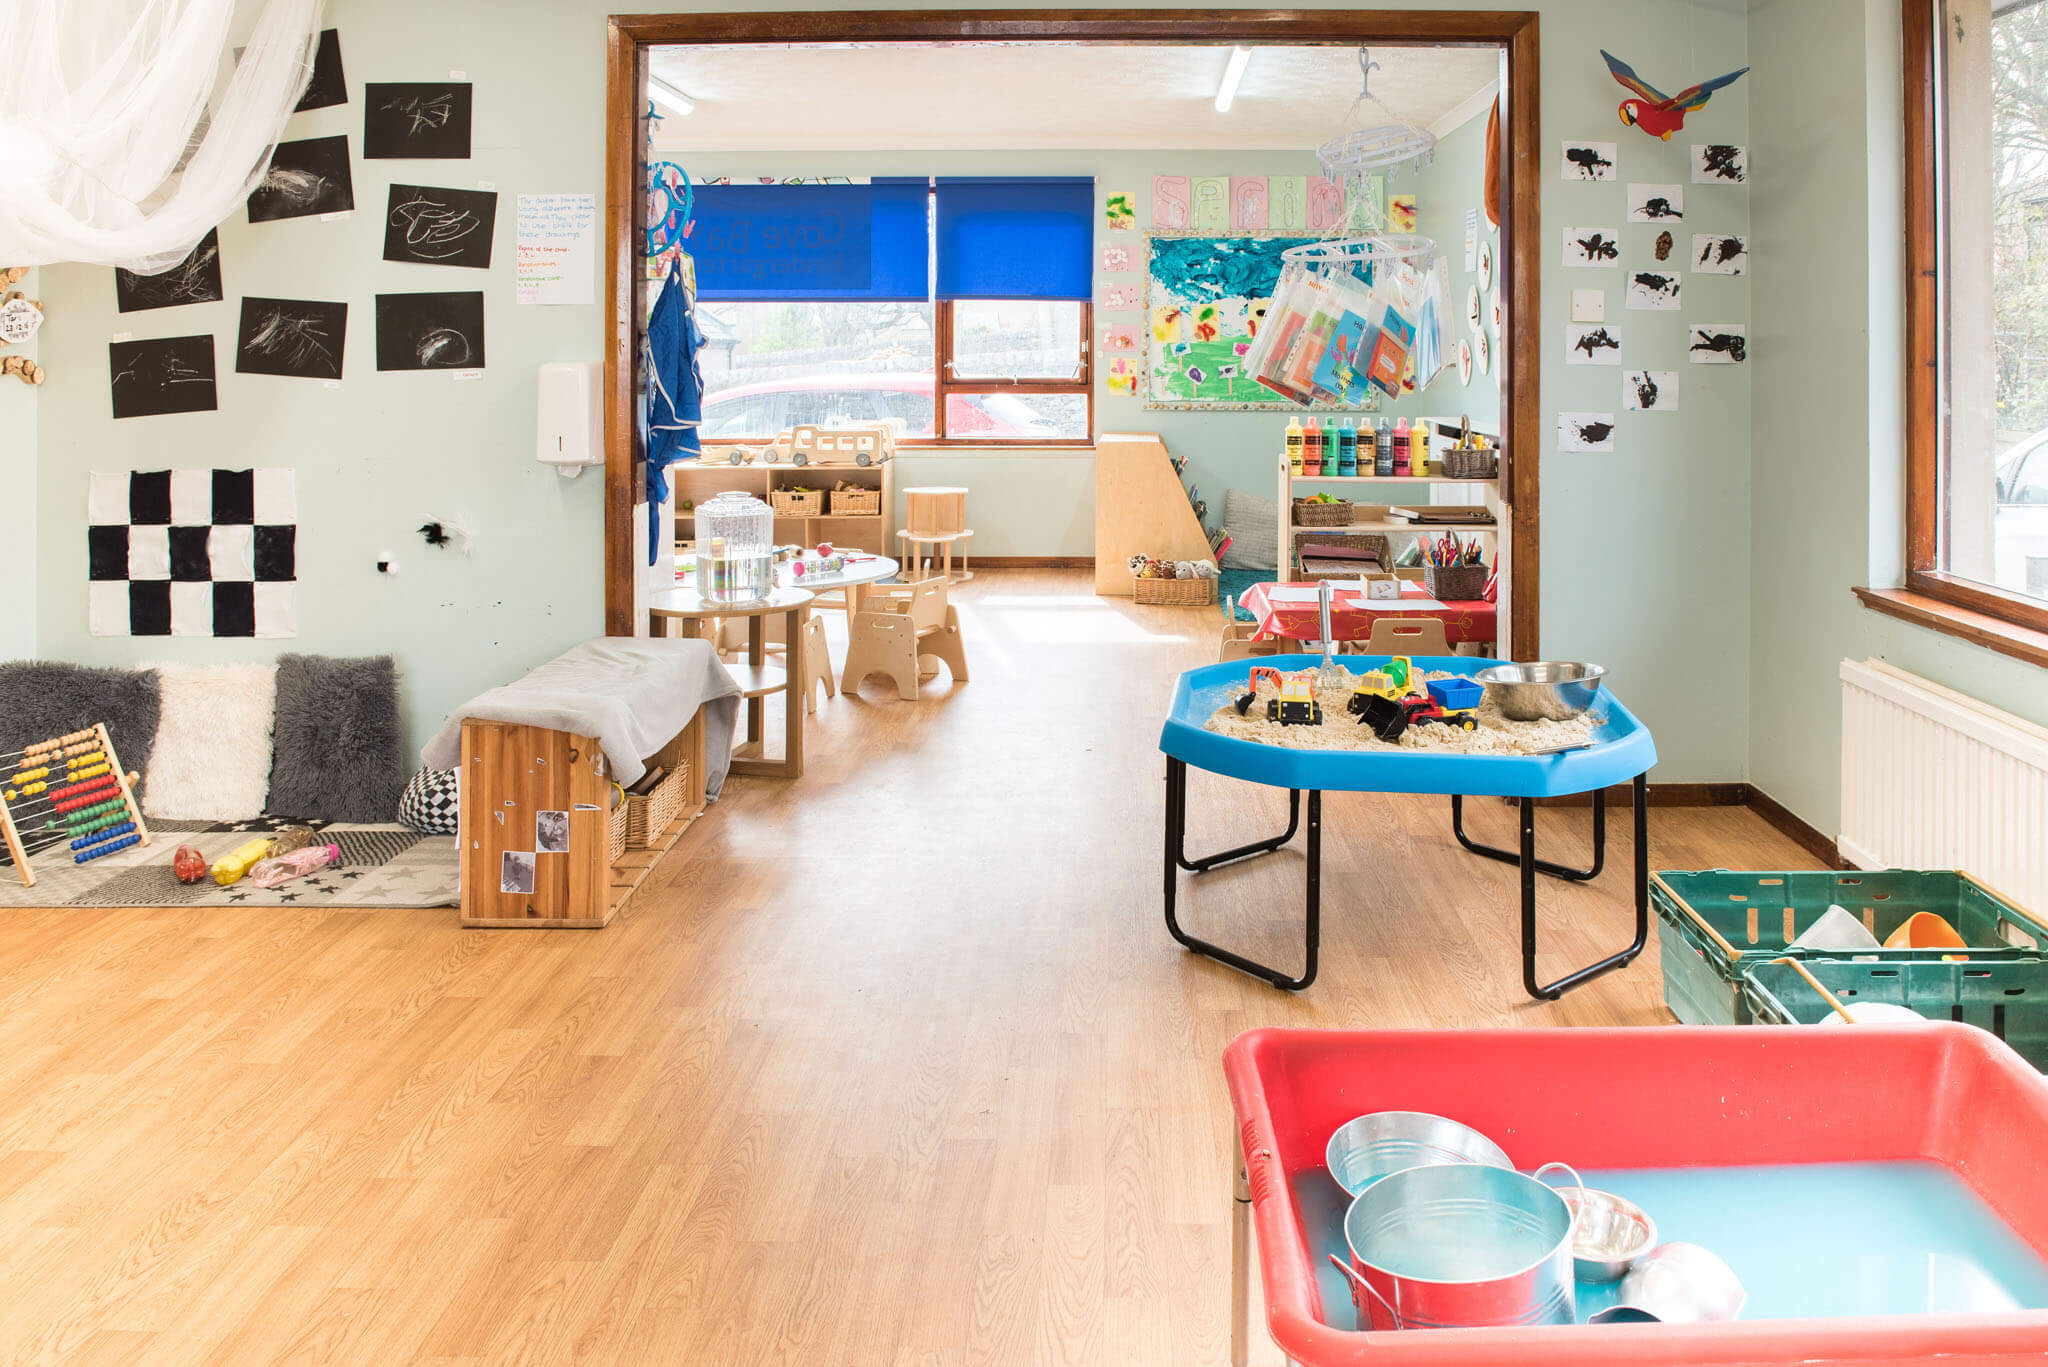 Cove Bay Nursery Playrooms